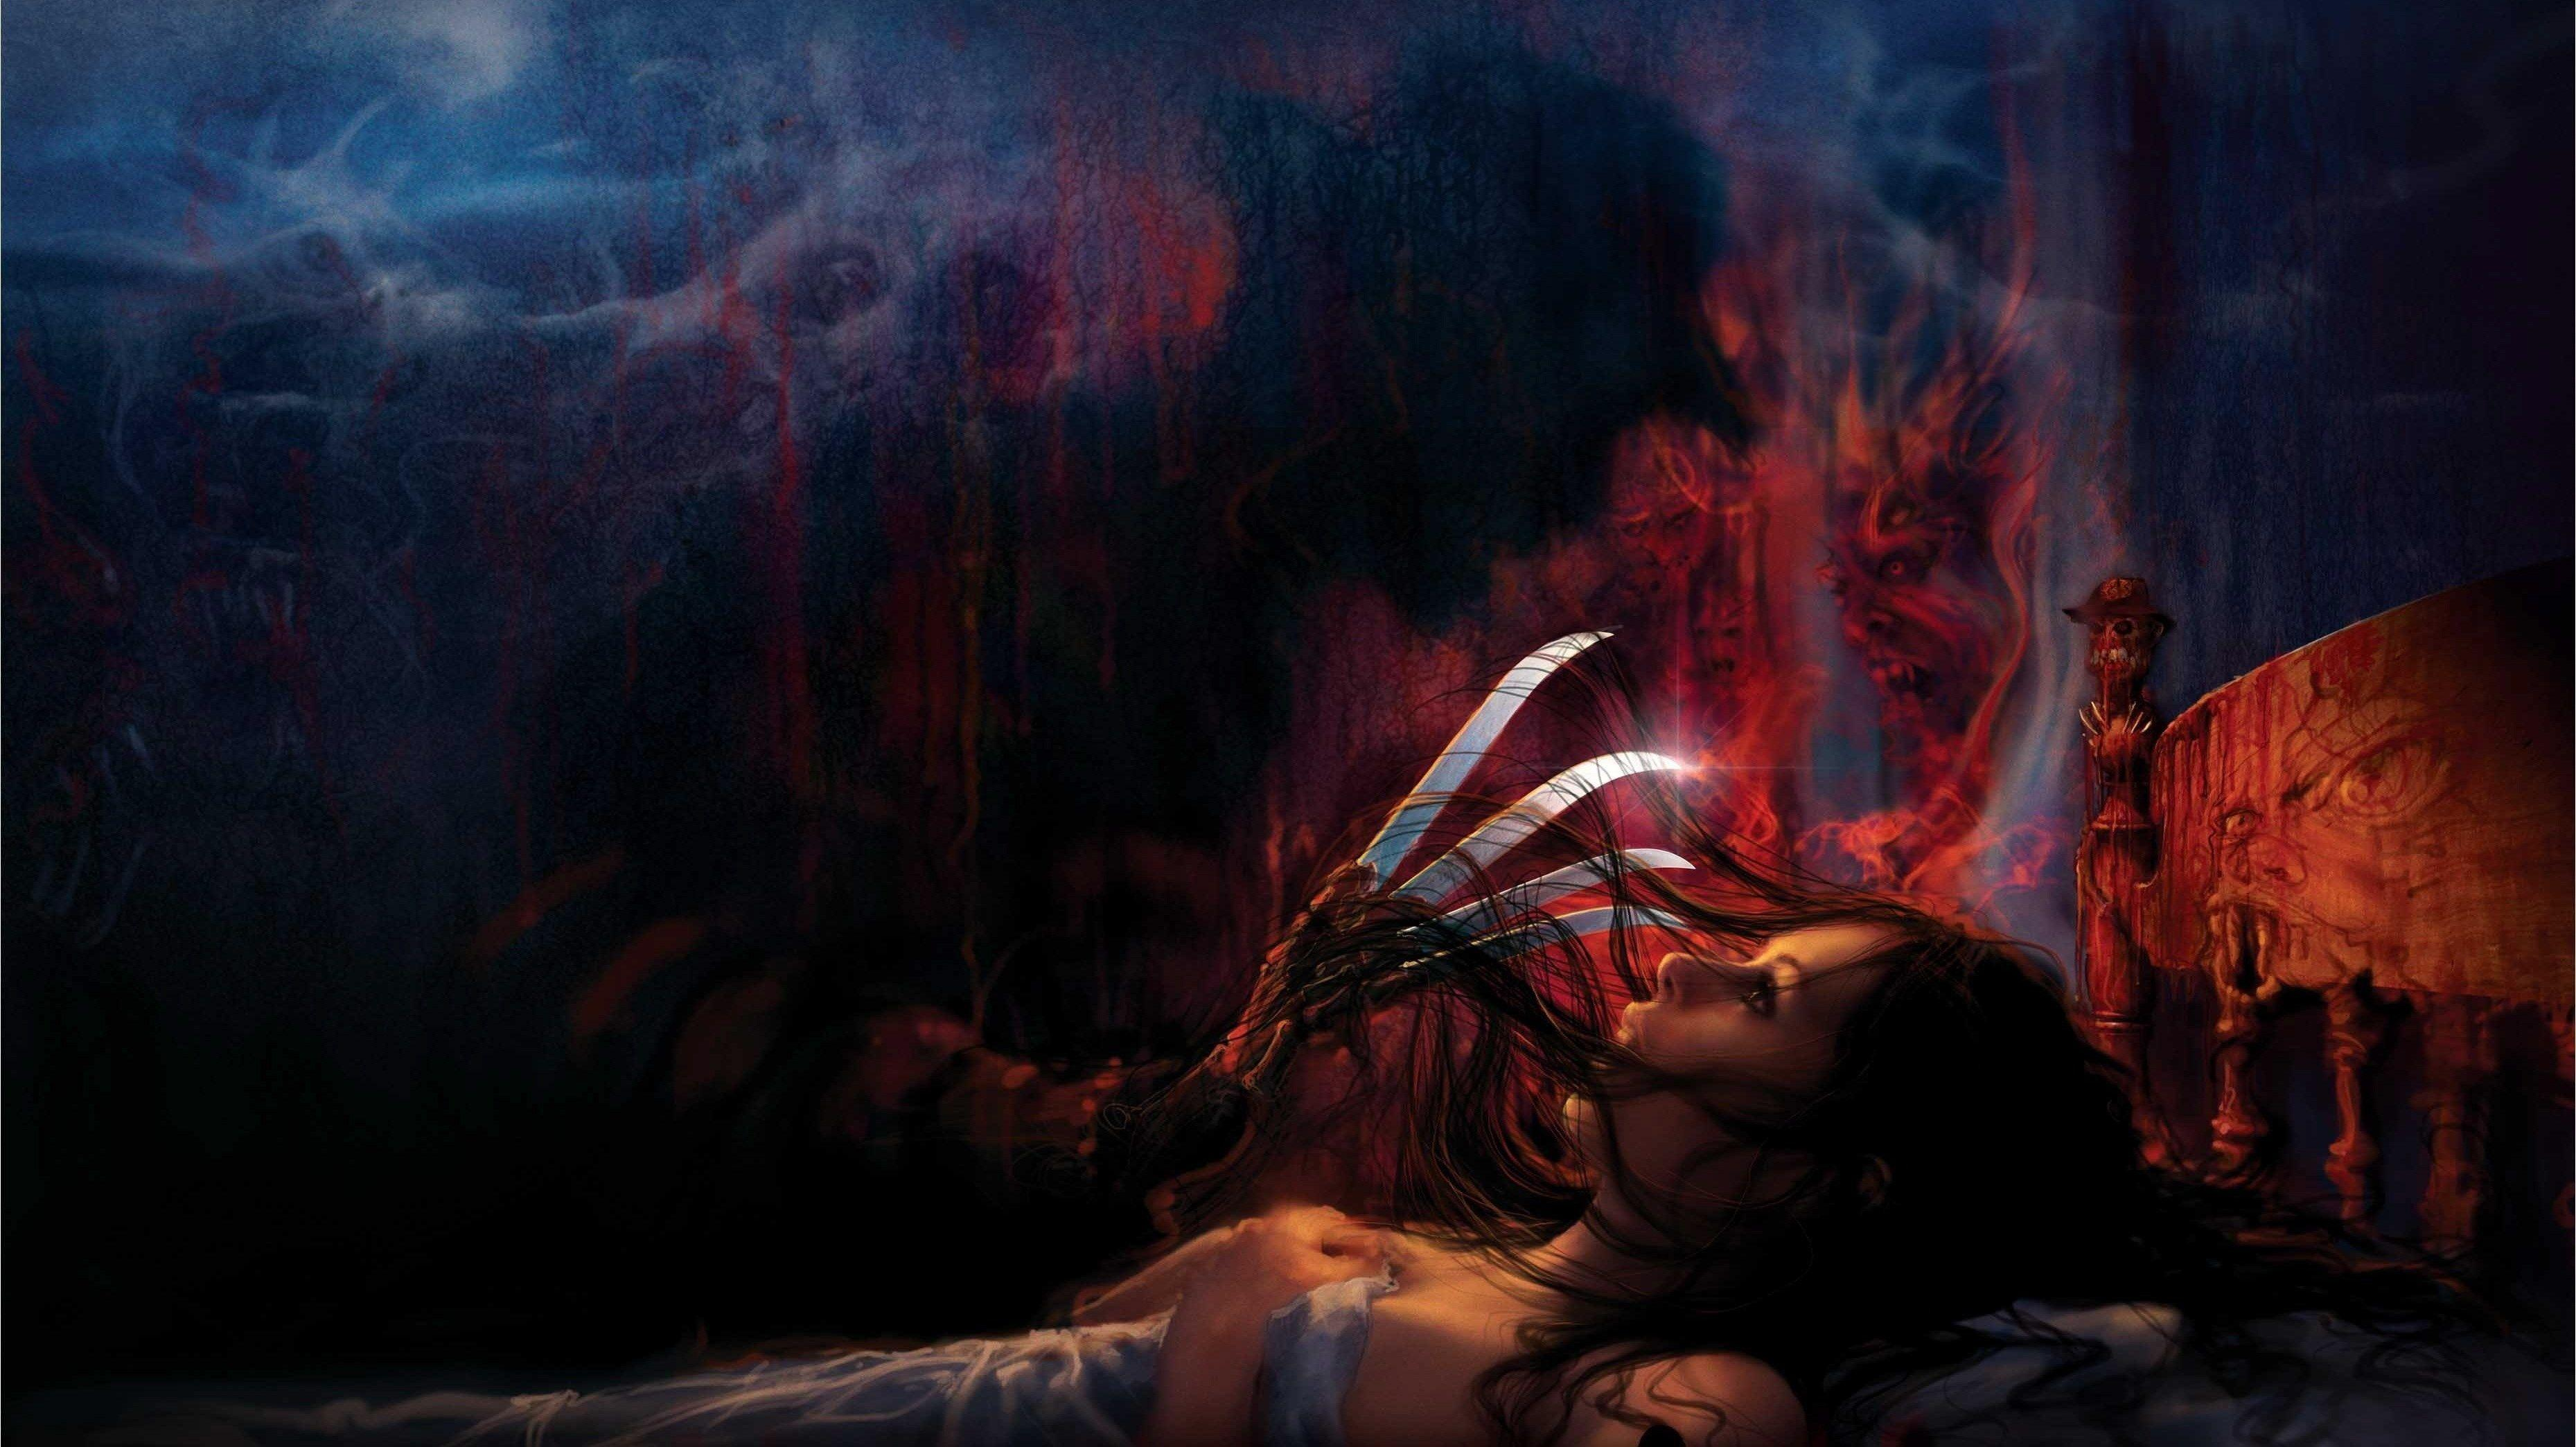 a nightmare on elm street wallpapers hd backgrounds image by